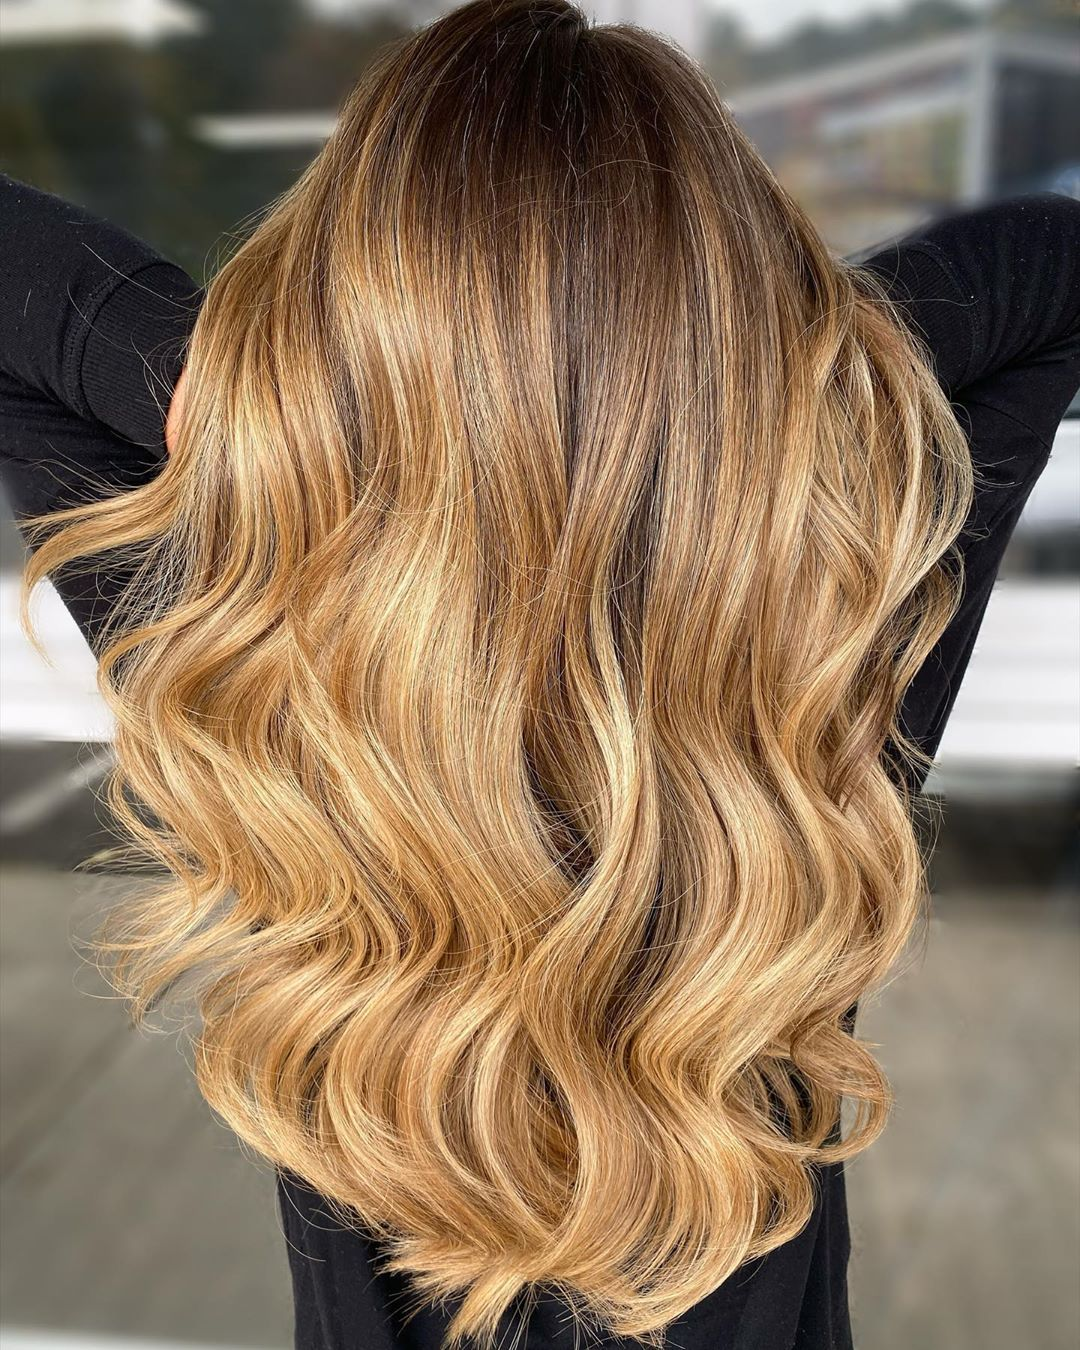 Blonde Hair Color Ideas For Summer Vida Joven In 2020 Balayage Hair Honey Honey Hair Color Balyage Long Hair